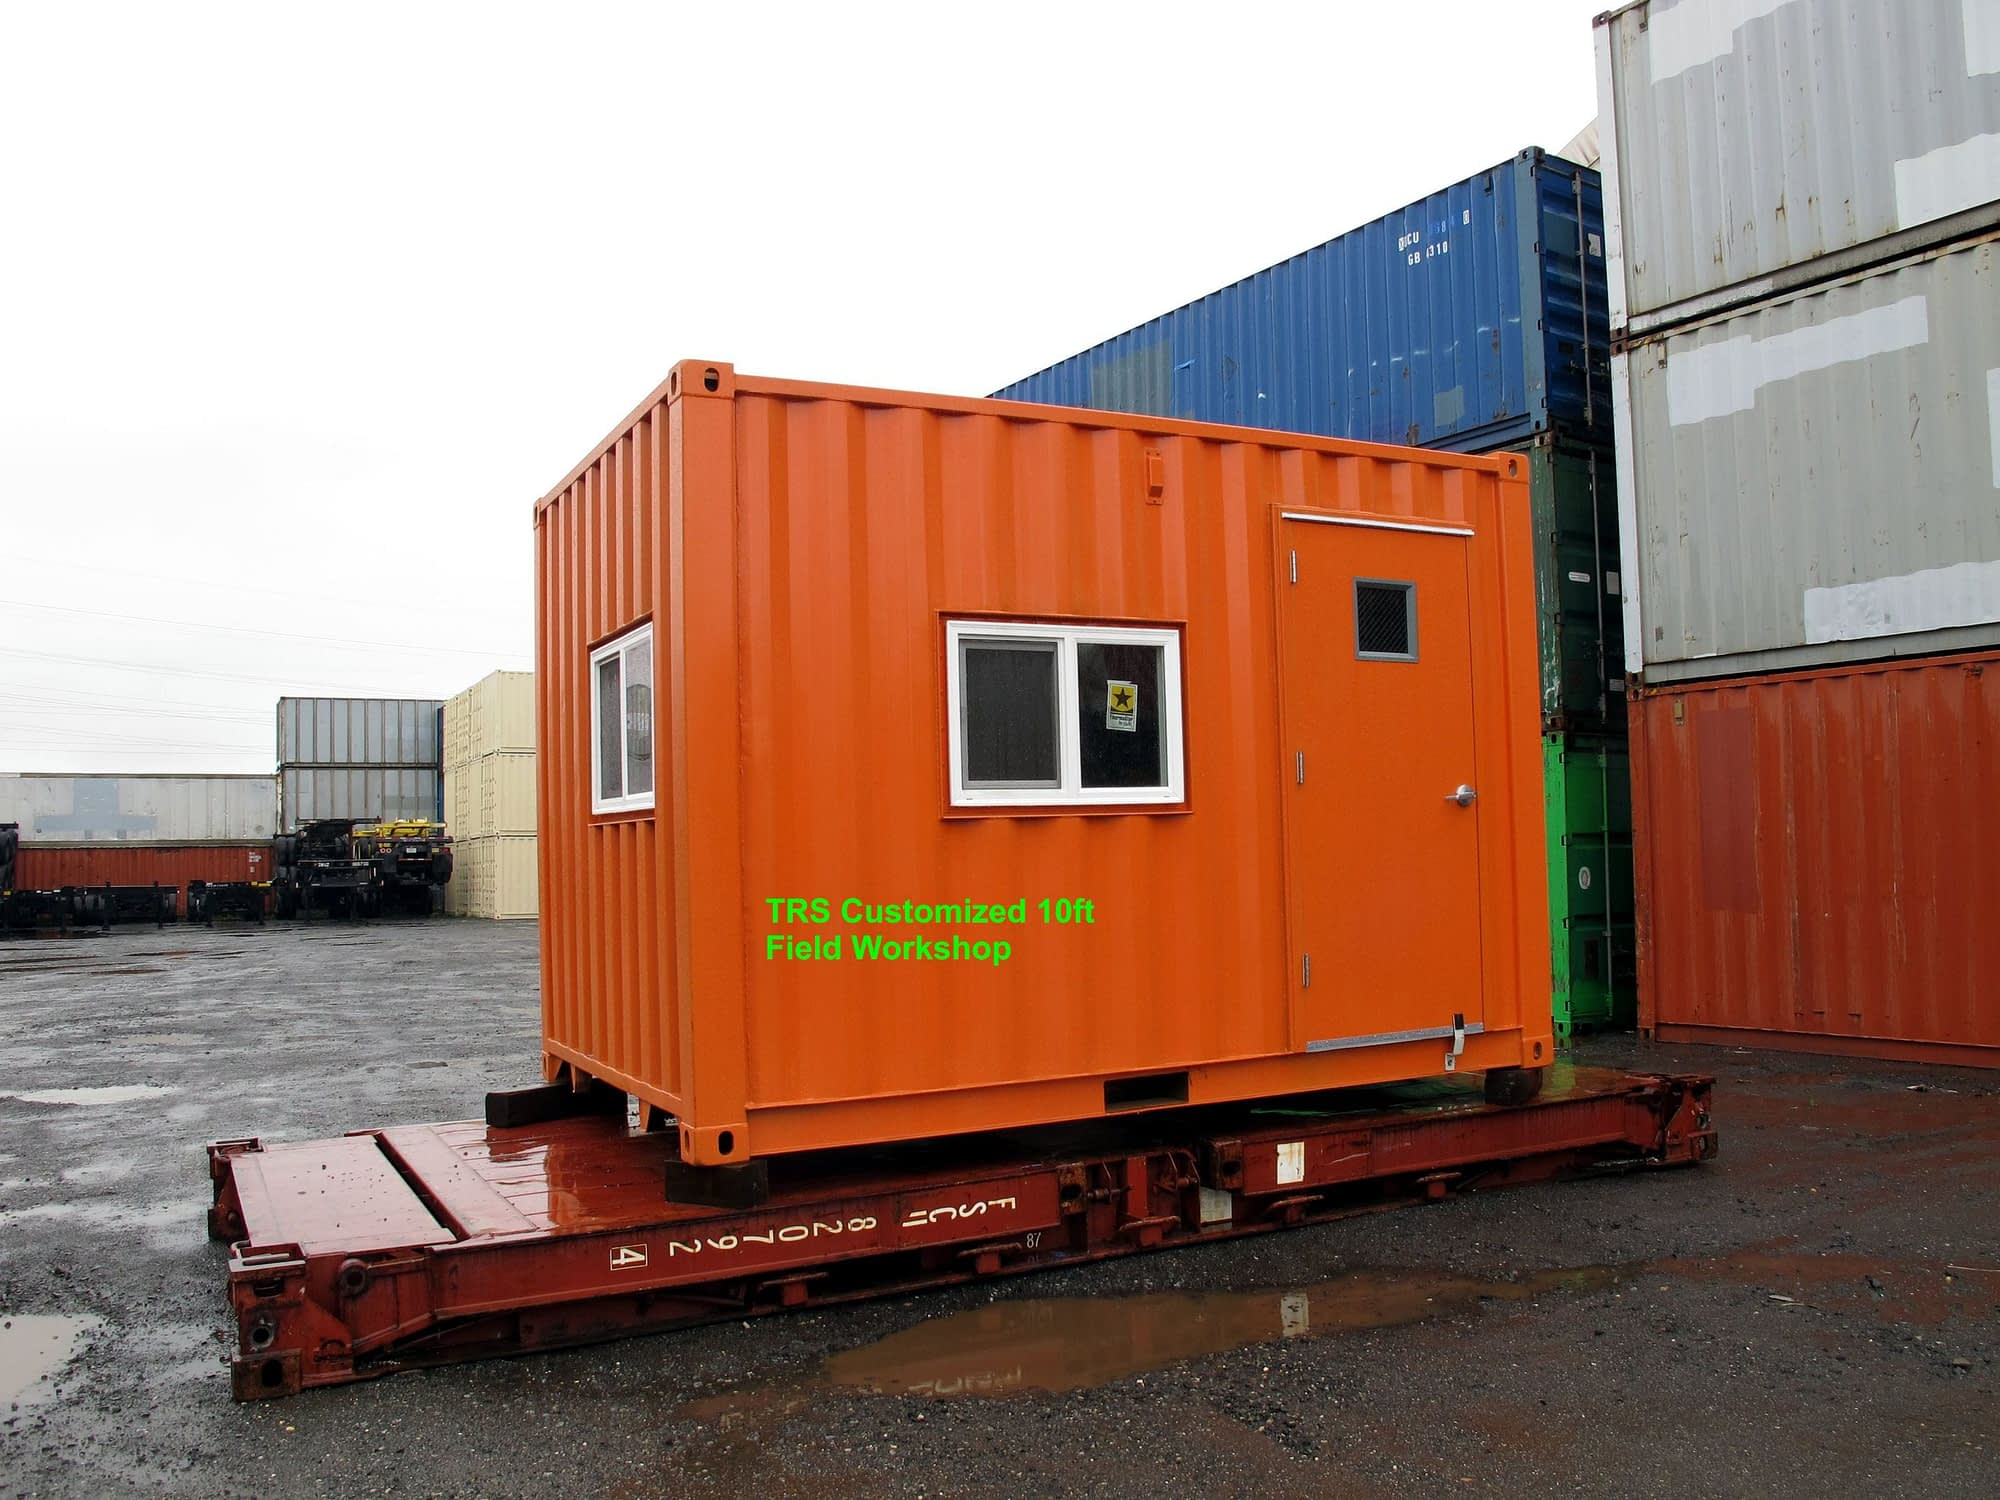 TRS converted a 20ft into a 10ft long used shipping container. Now it is a field office.